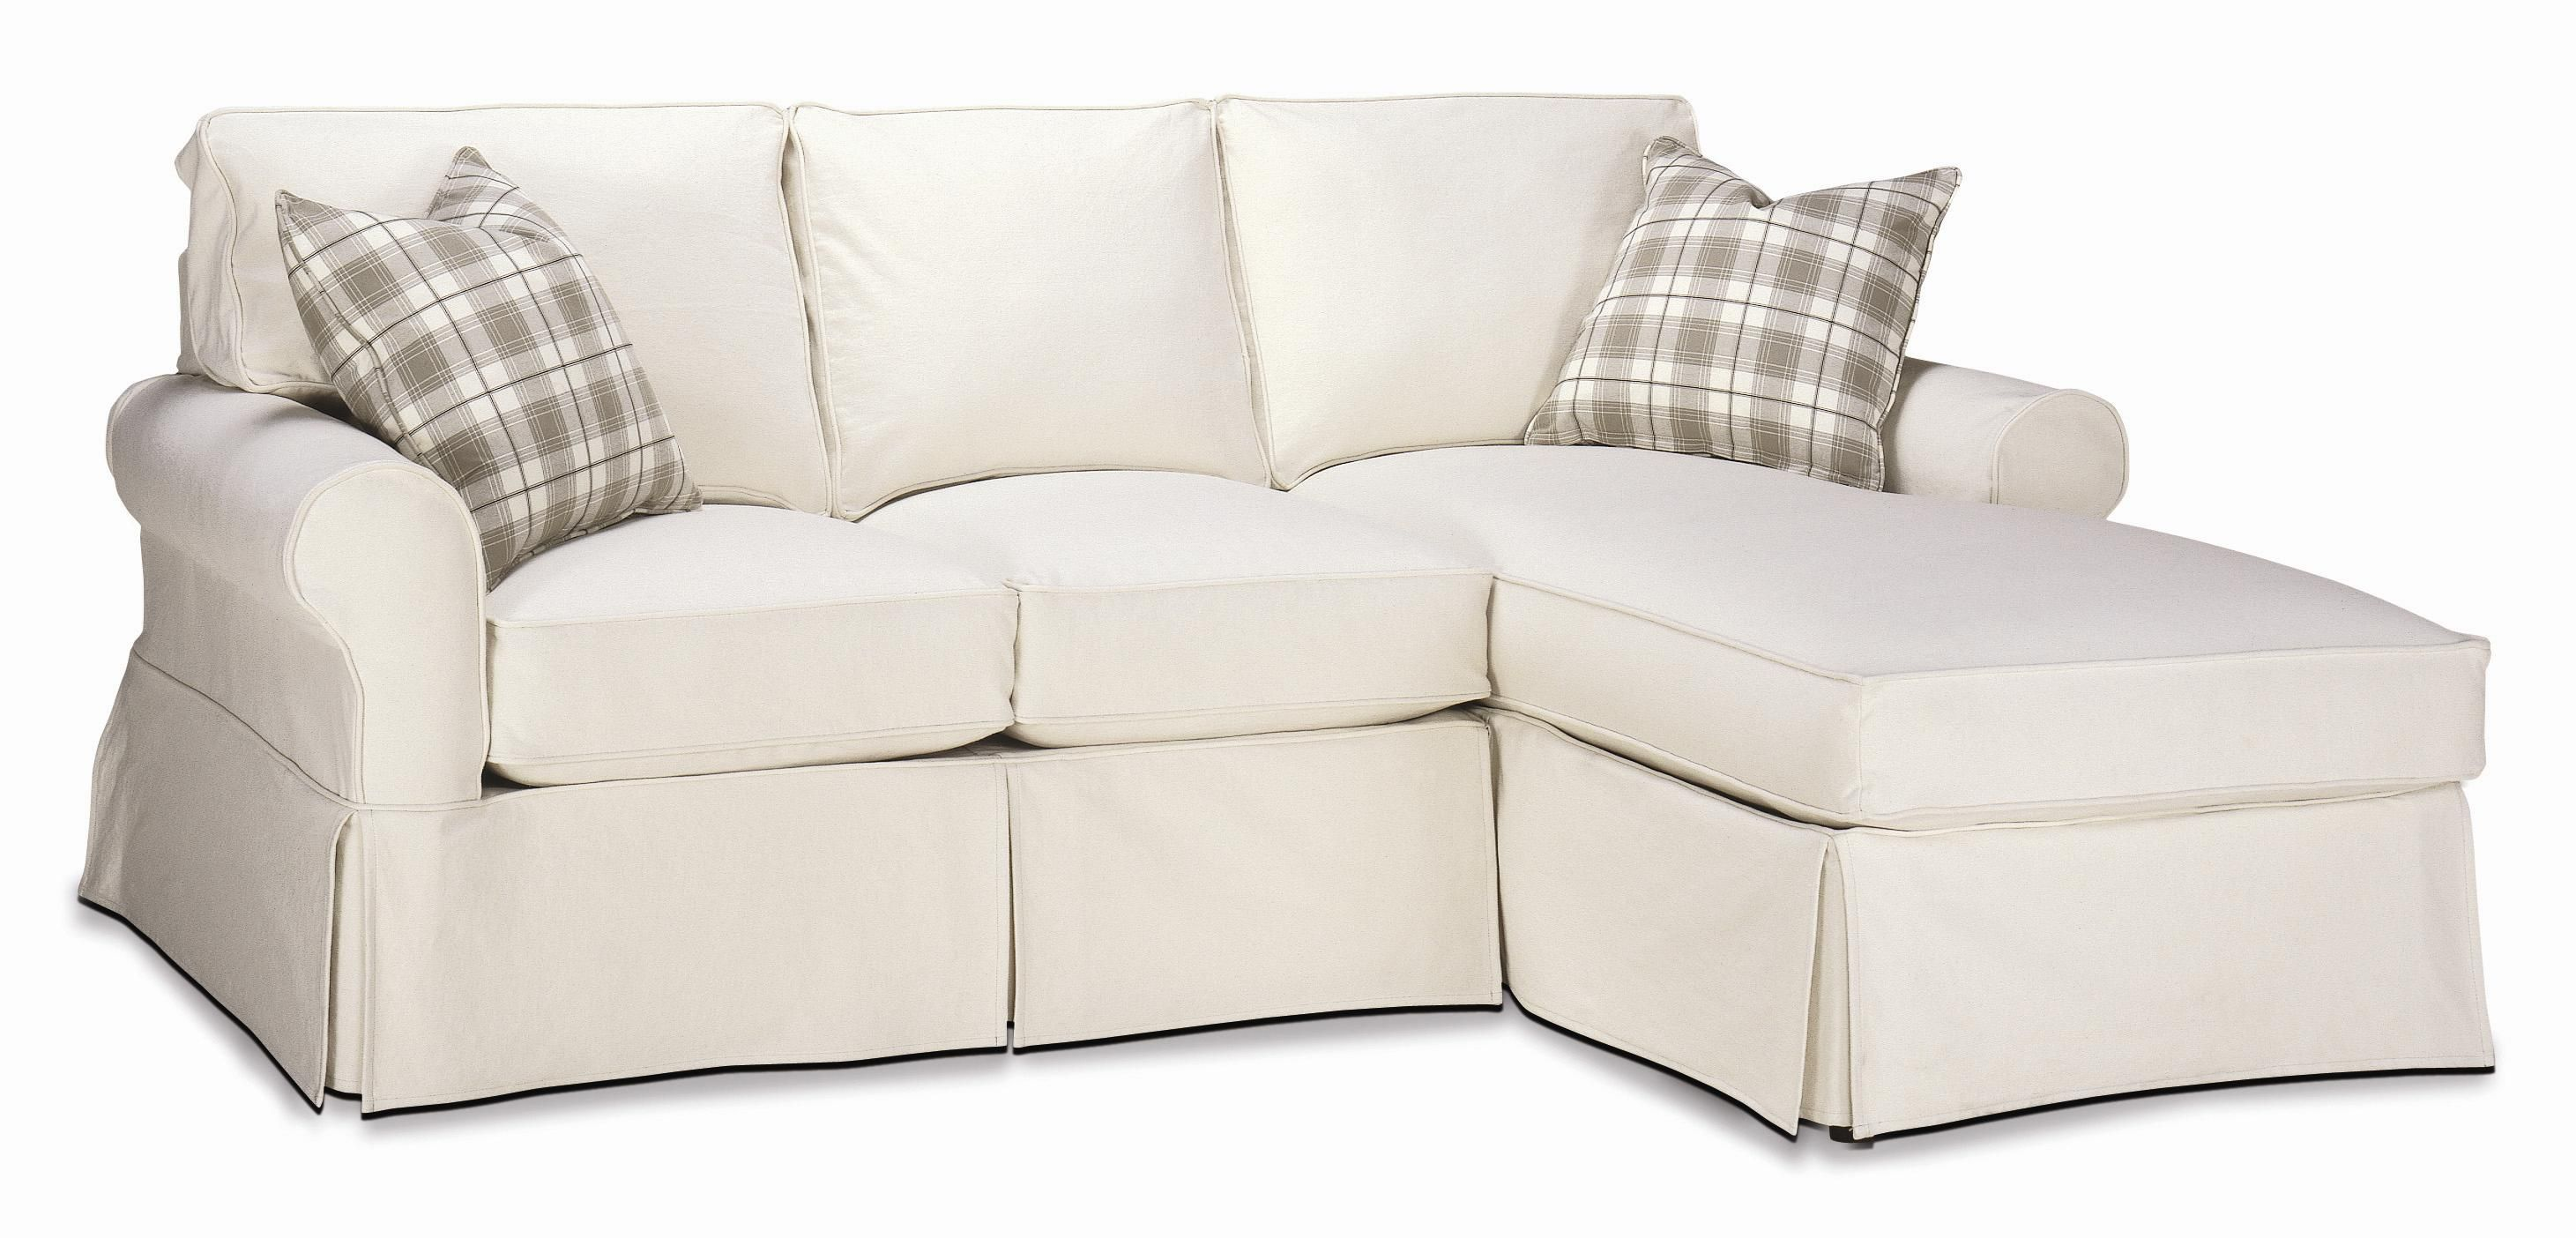 Rowe Masquerade Sectional Sofa Oregon Faux Leather Bed Reviews Casual Style By